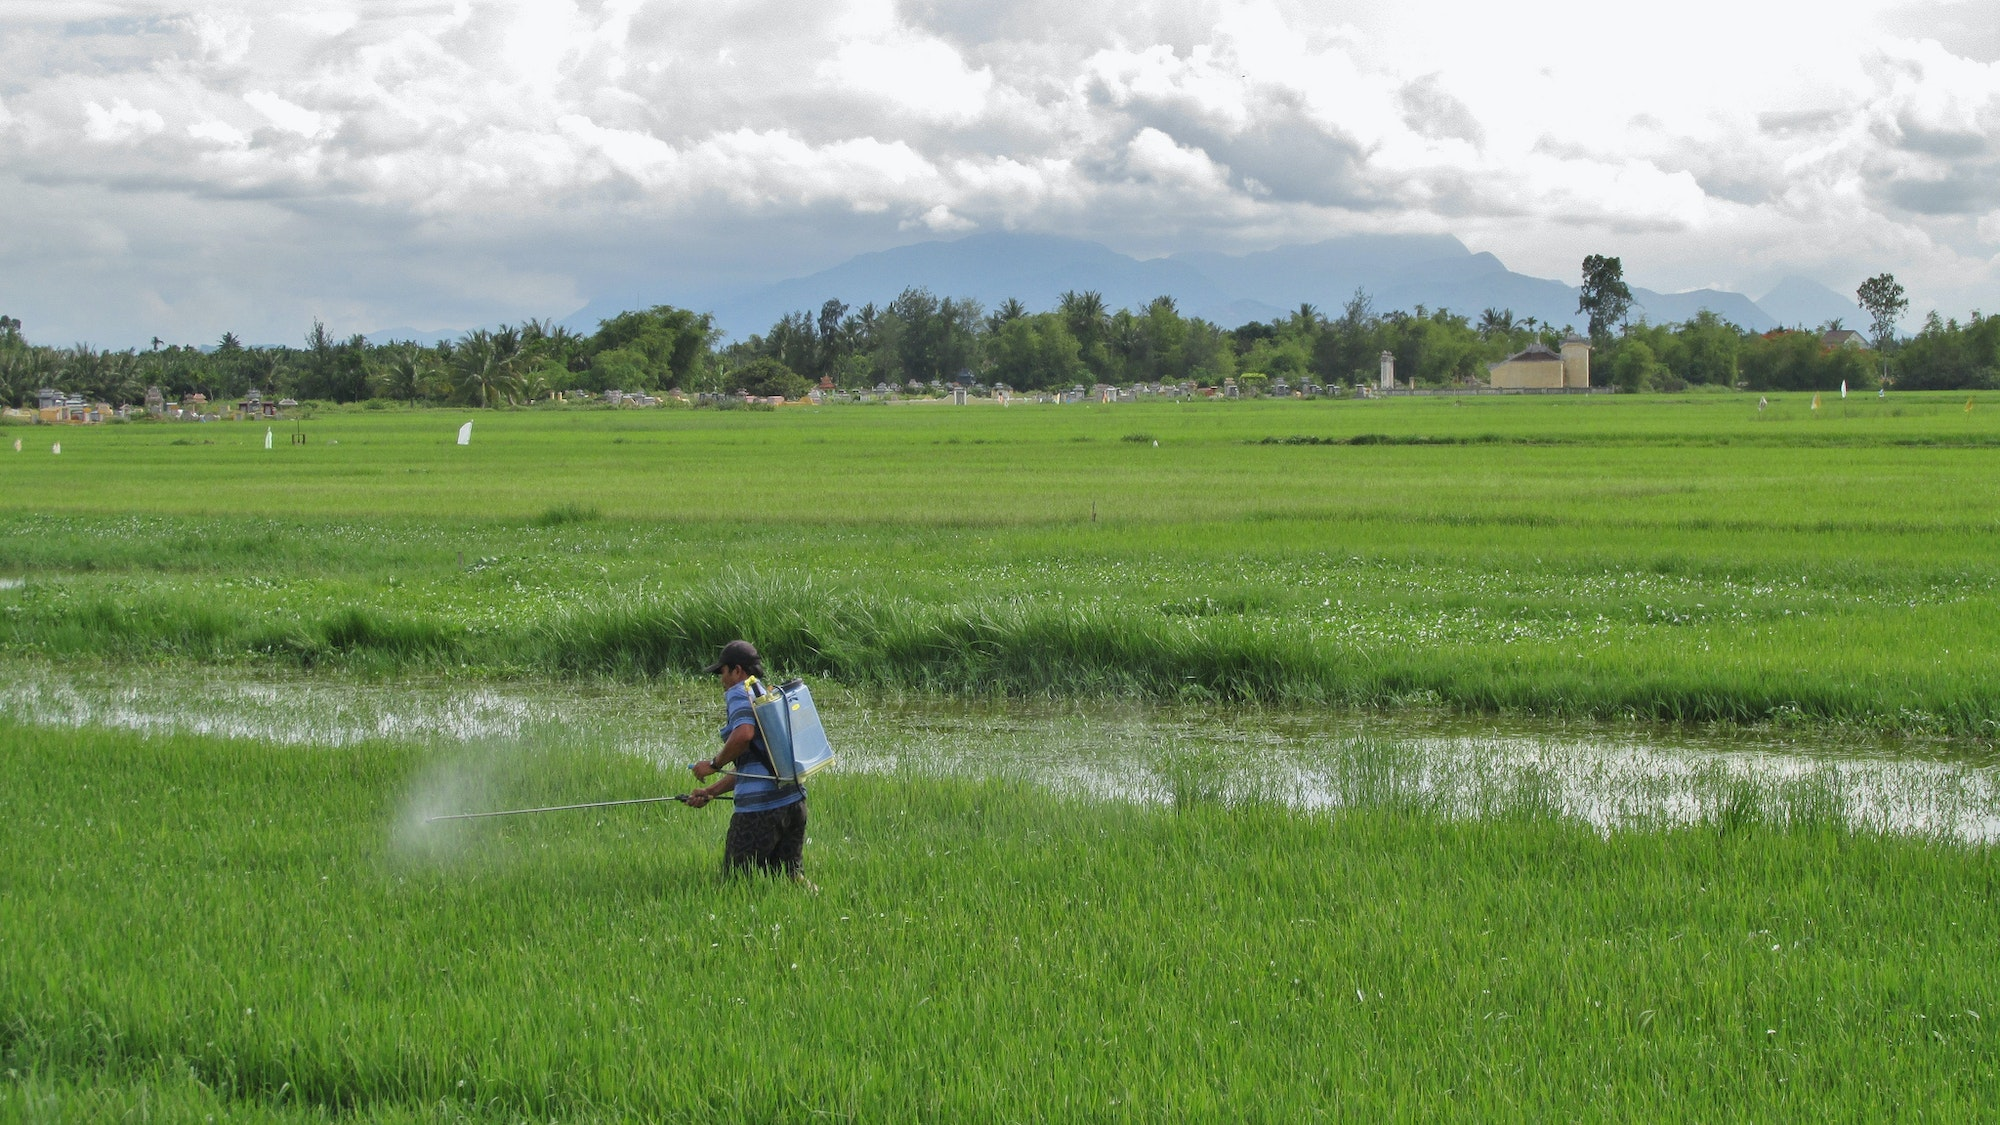 May contain: field, outdoors, grassland, nature, paddy field, countryside, human, and person